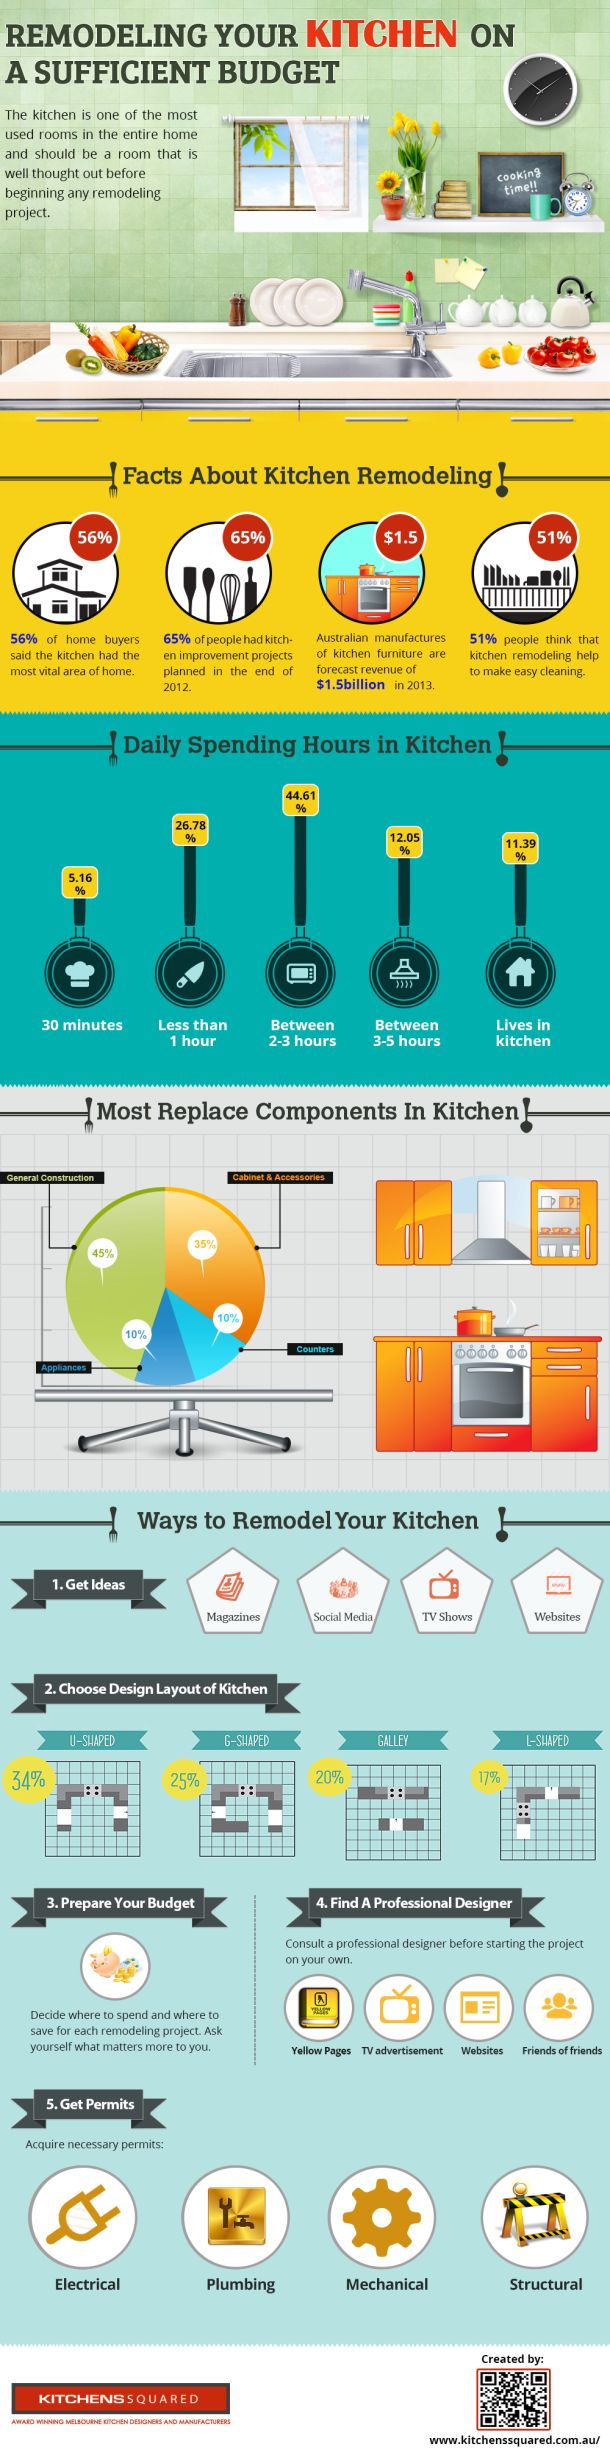 95 best Kitchen images on Pinterest | Kitchen ideas, Homes and ...